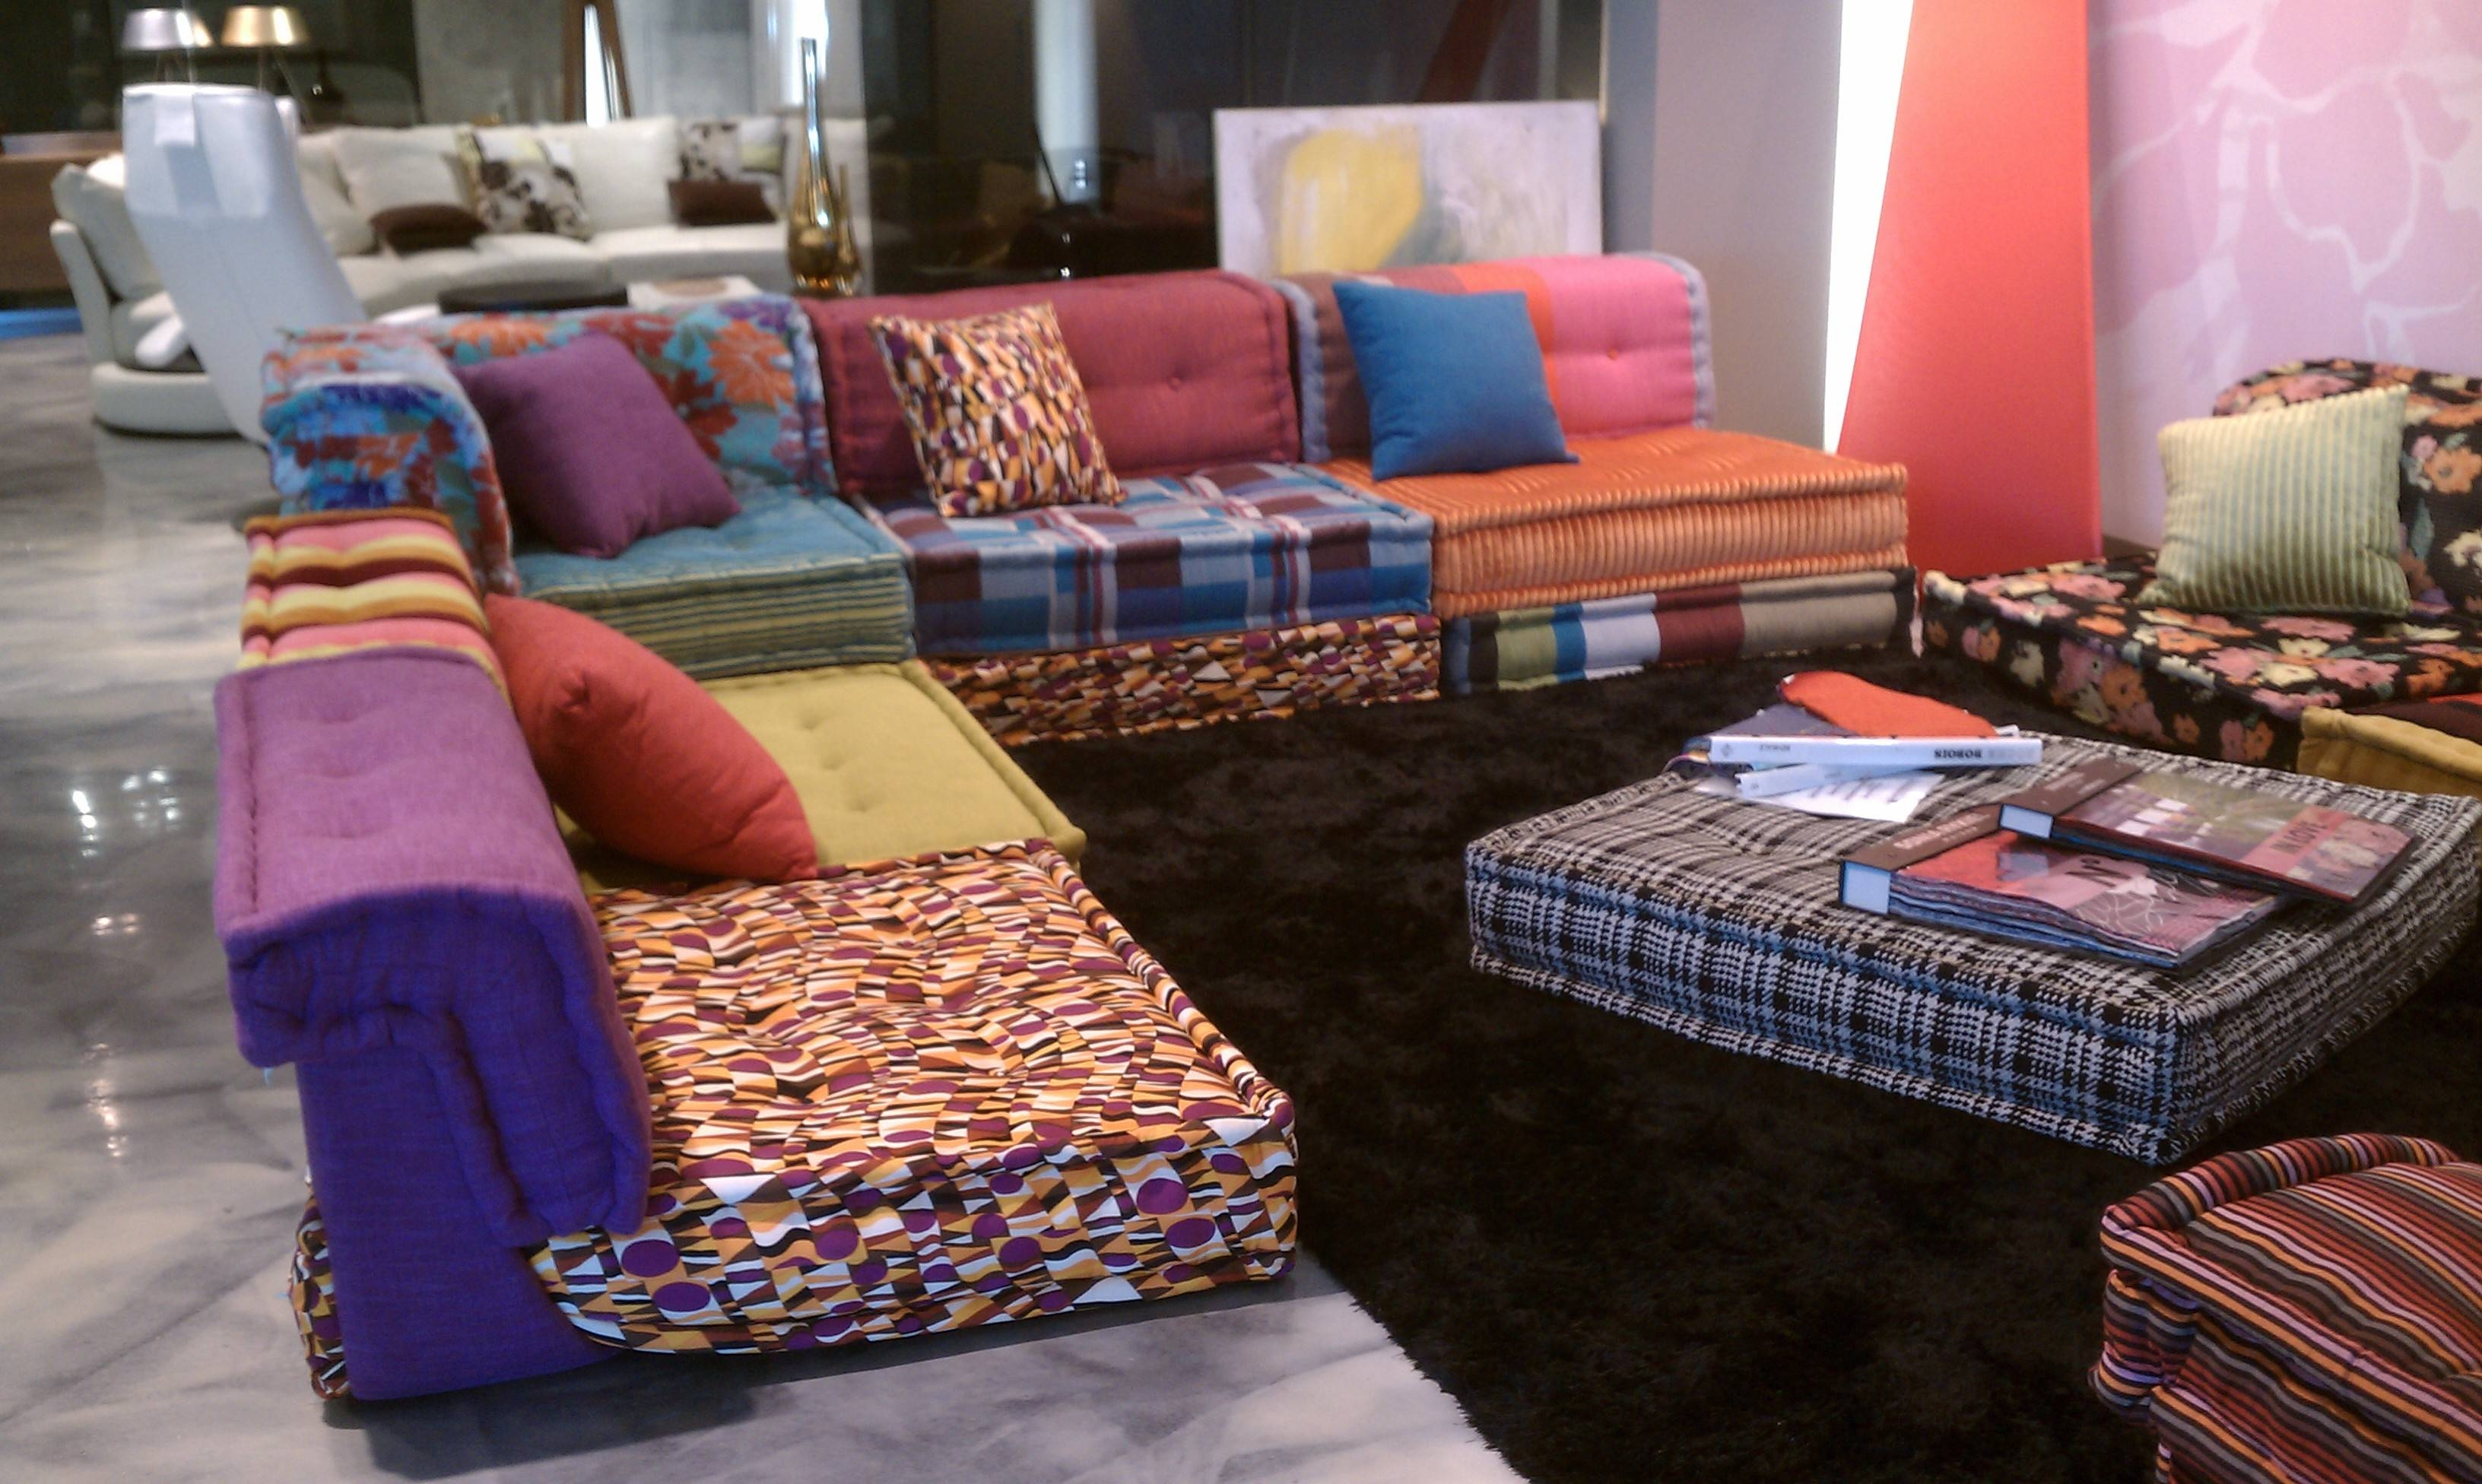 Dream Couch: Missoni Bohemian Sofa | The Cherie Bomb intended for Roche Bobois Mah Jong Sofas (Image 3 of 15)